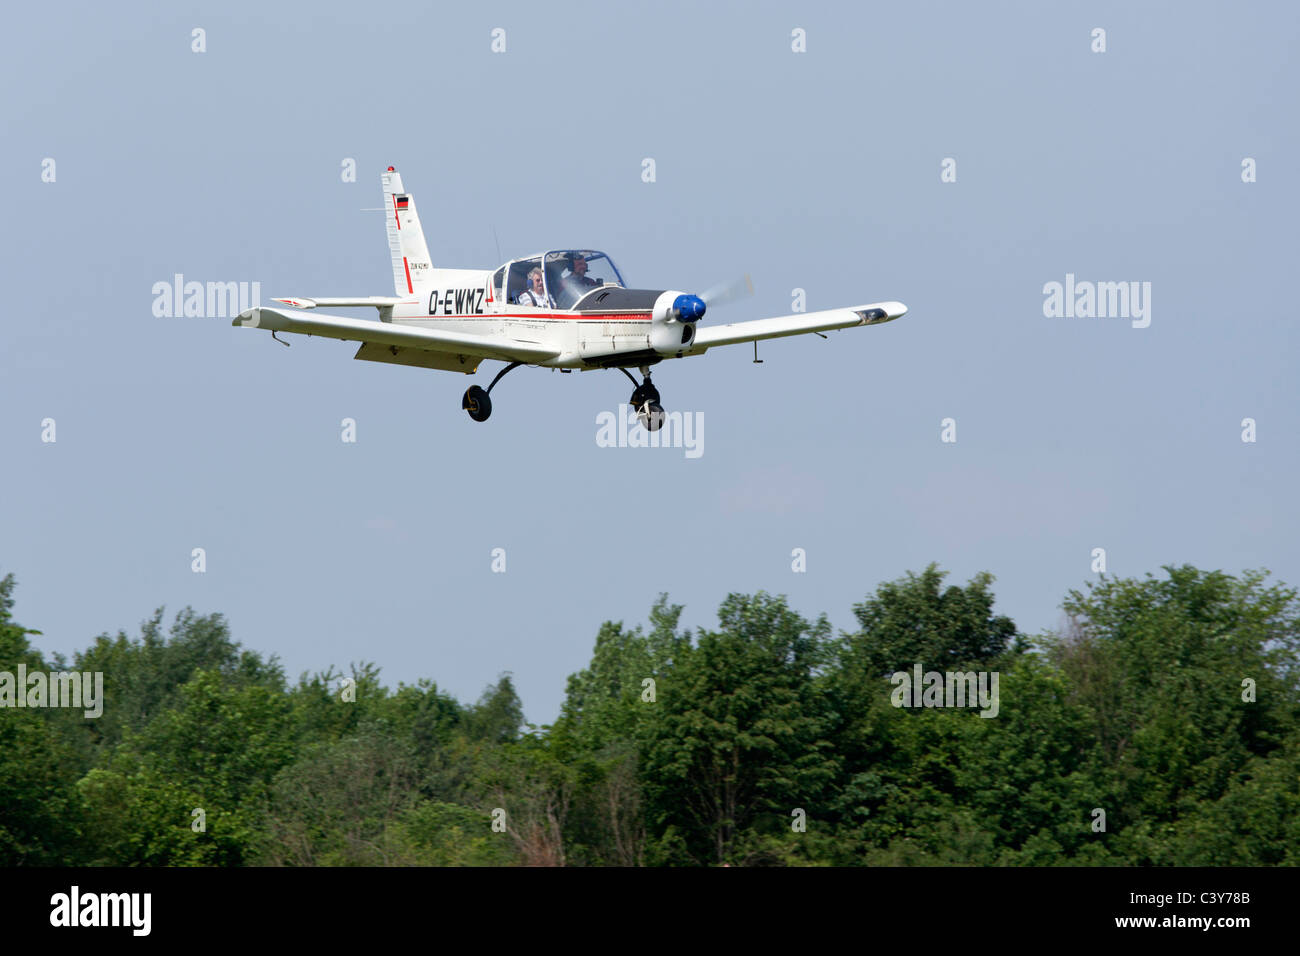 sporting airplane Zlin 42 at an airfield festival in Lower Saxony, Germany - Stock Image